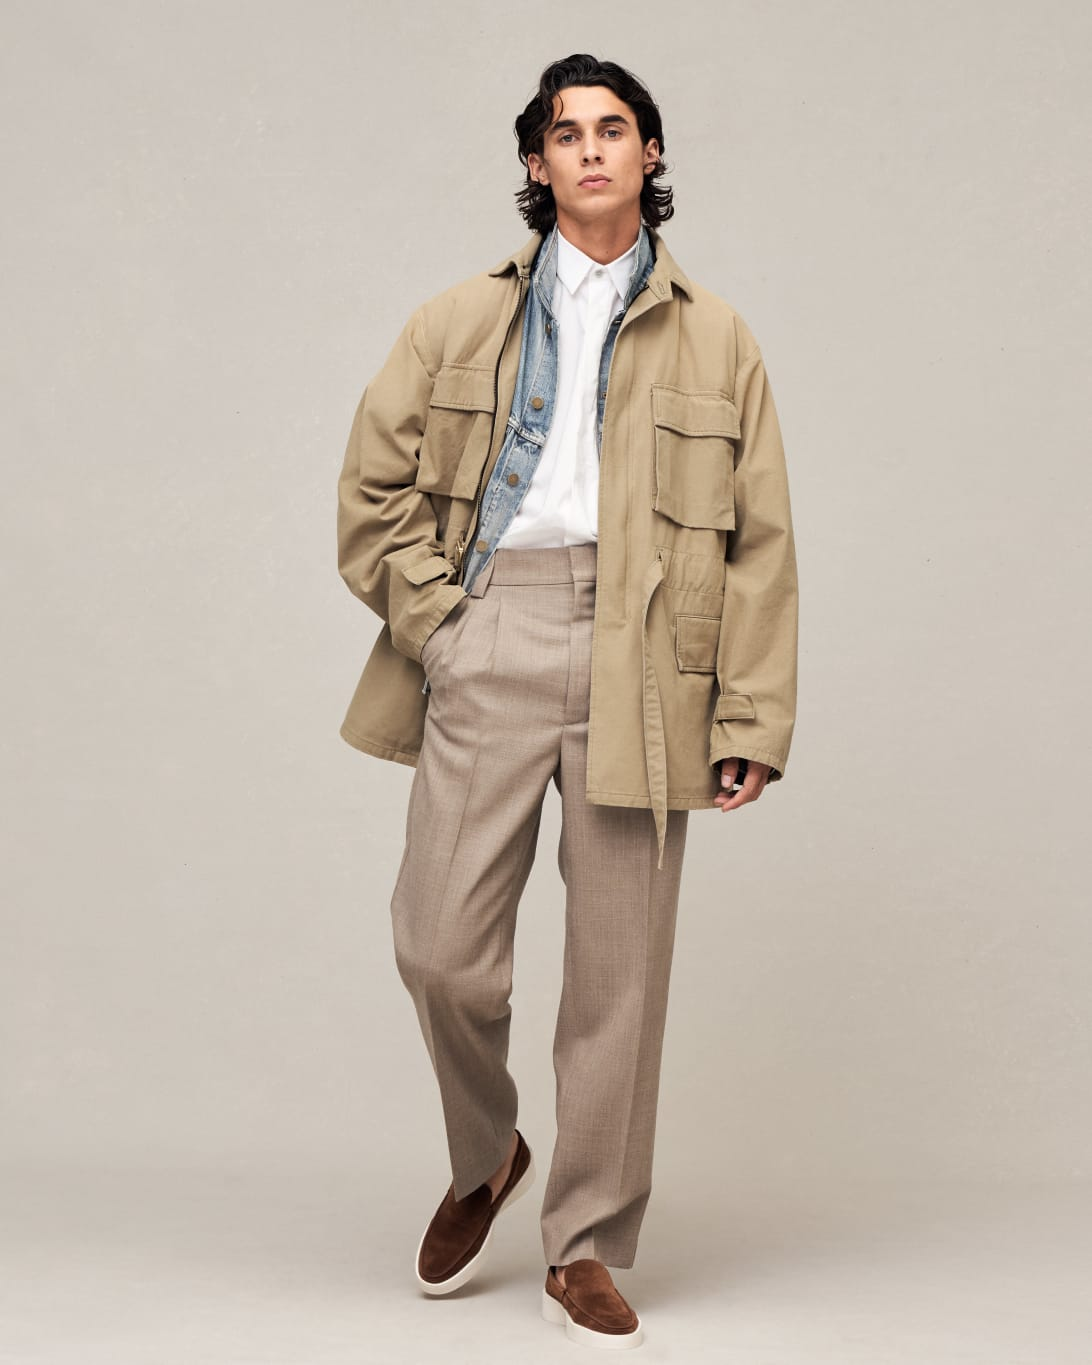 Seventh Collection | Fall/Winter Lookbook Look 01